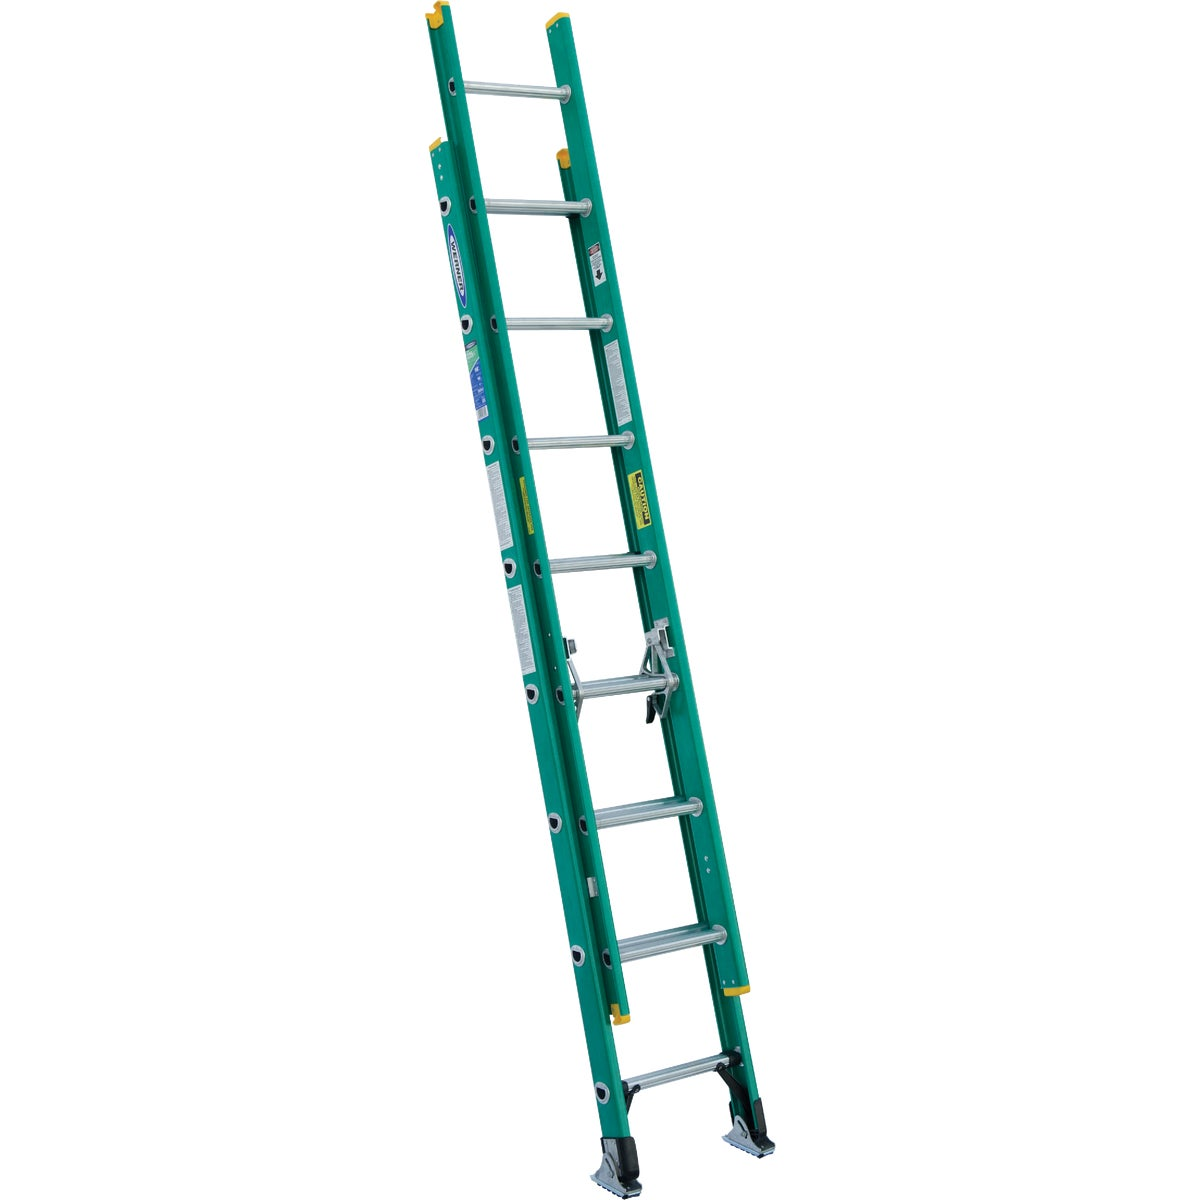 T-2 16' FBGL EXT LADDER - D5916-2 by Werner Ladder